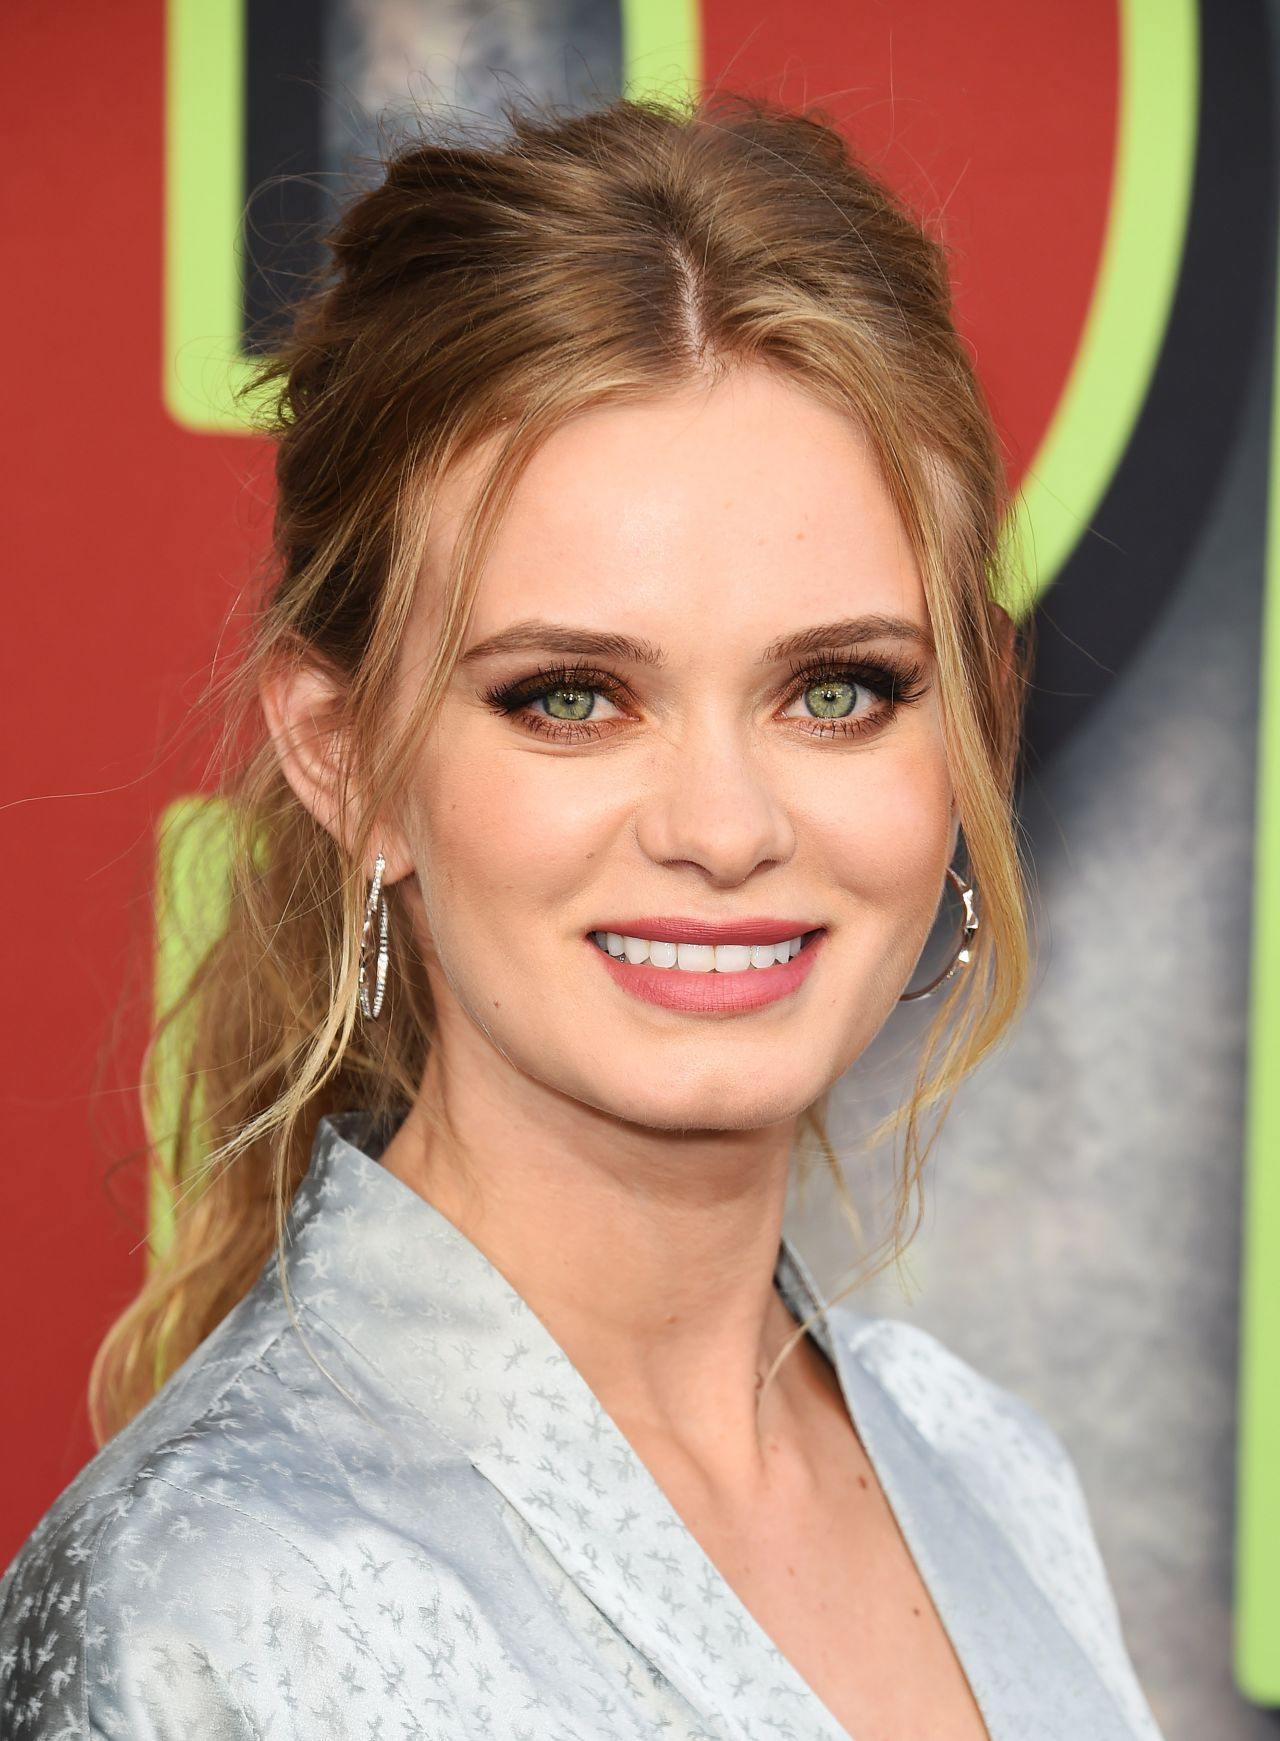 Communication on this topic: Nikita Gross, sara-paxton/